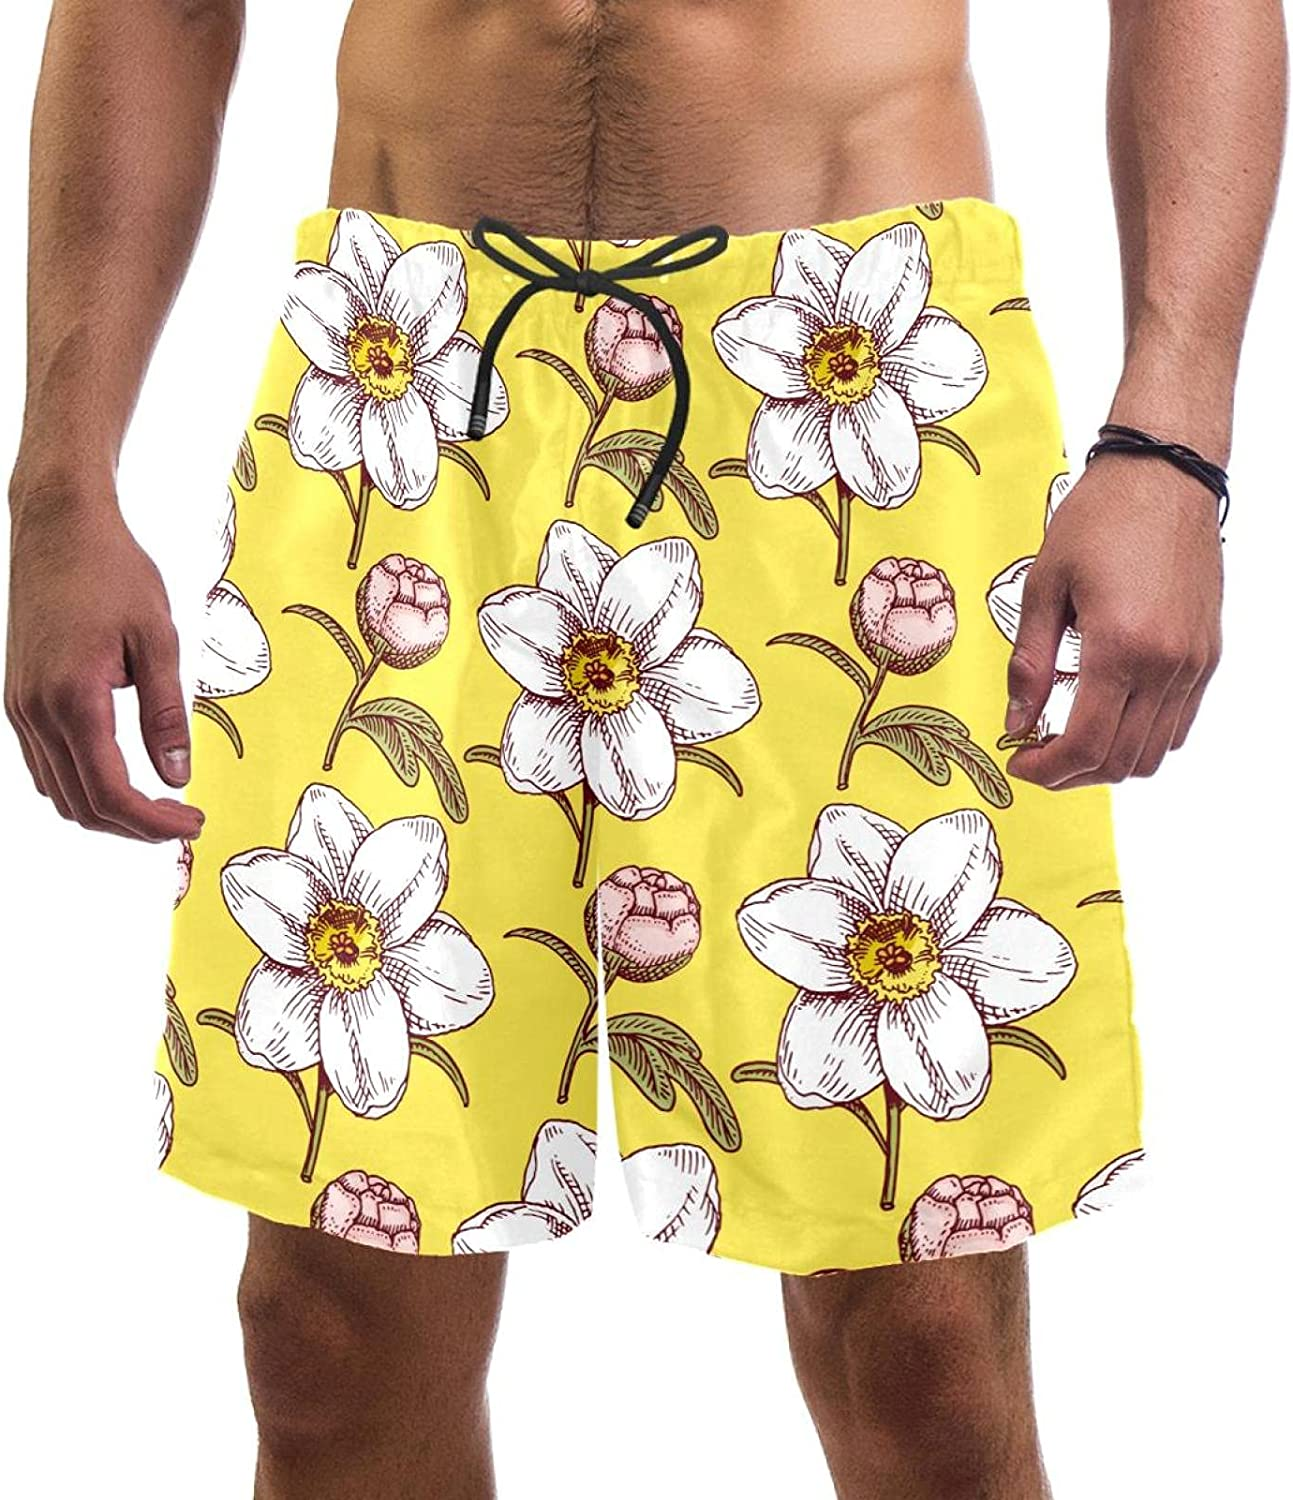 Wanlipous Men's Beach Shorts White Pink Blooming Flower Yellow Quick Dry Swim Short Trunks with Mesh Lining